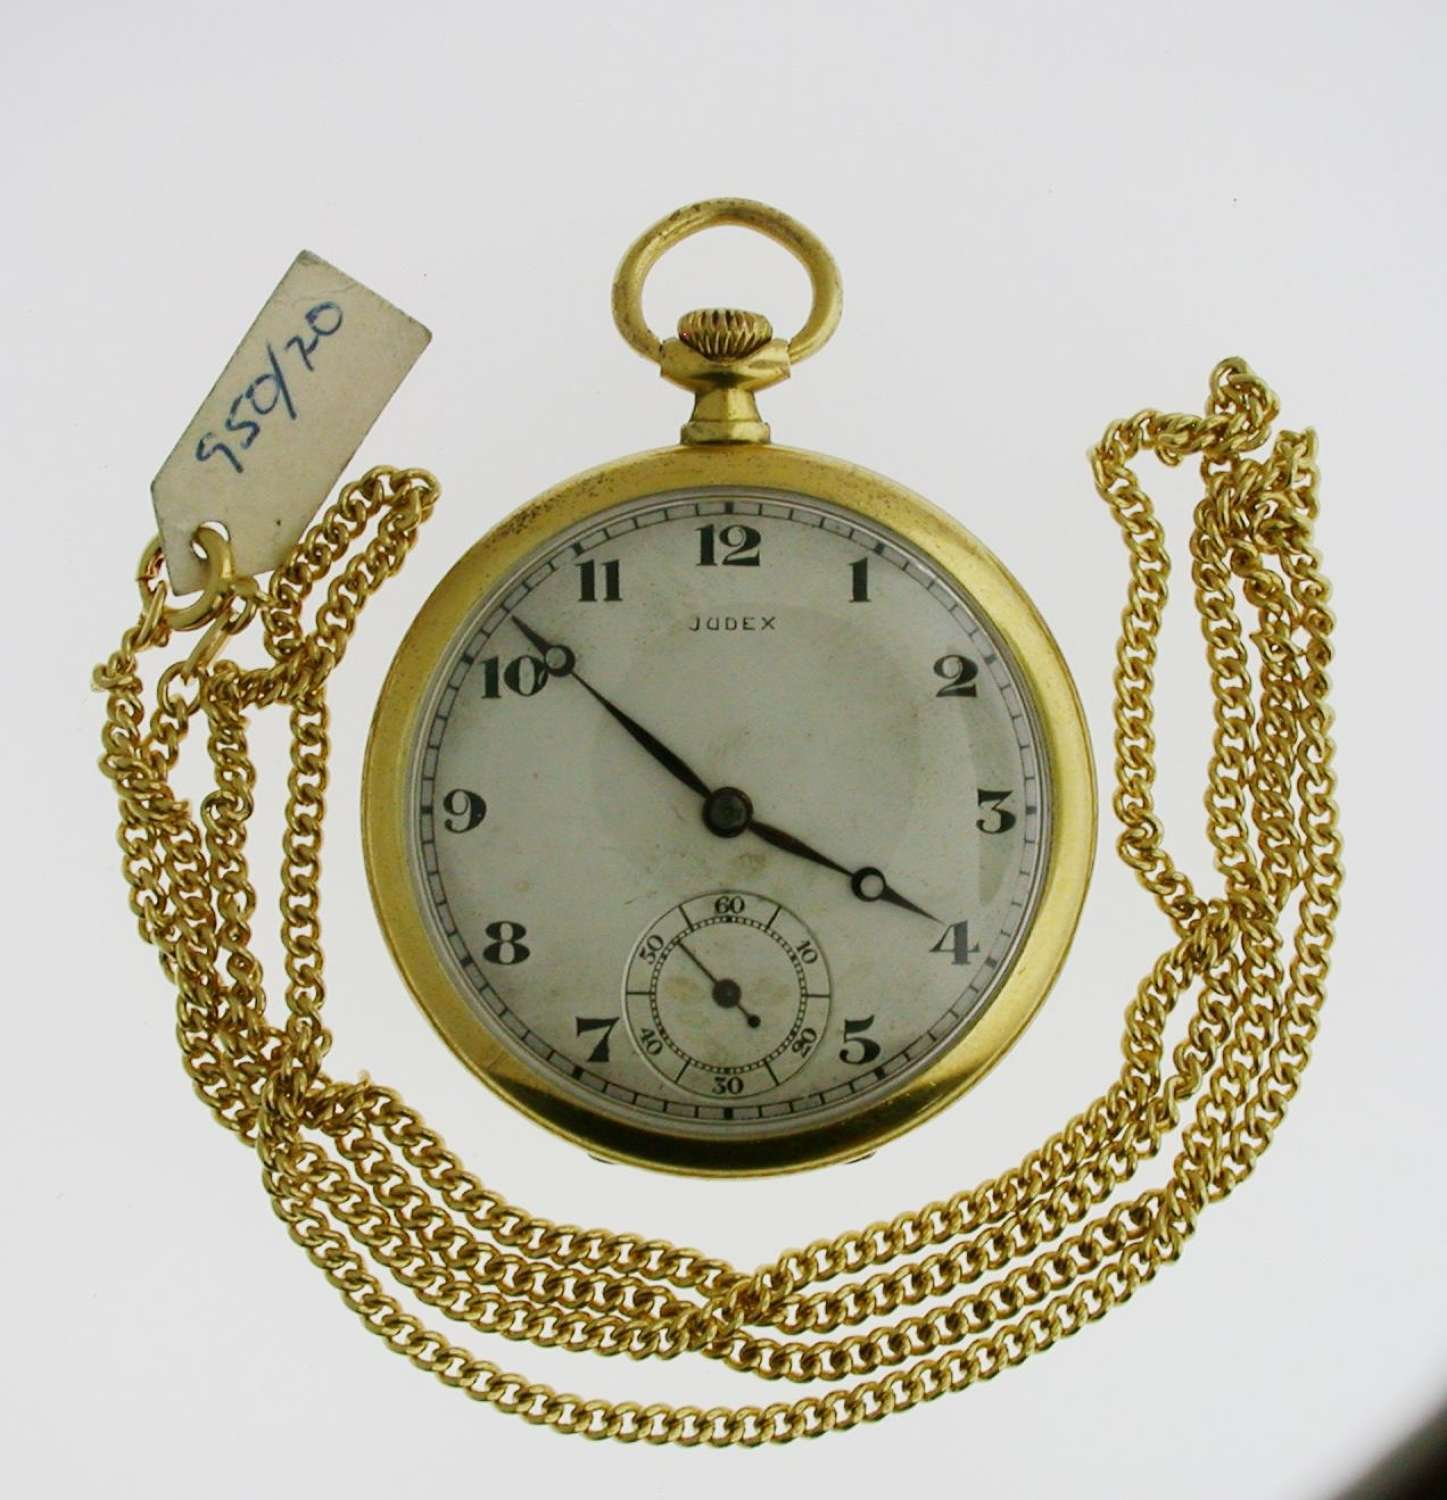 Judex Art Deco Gold Filled Open Face Pocket Watch with Chain Swiss1925